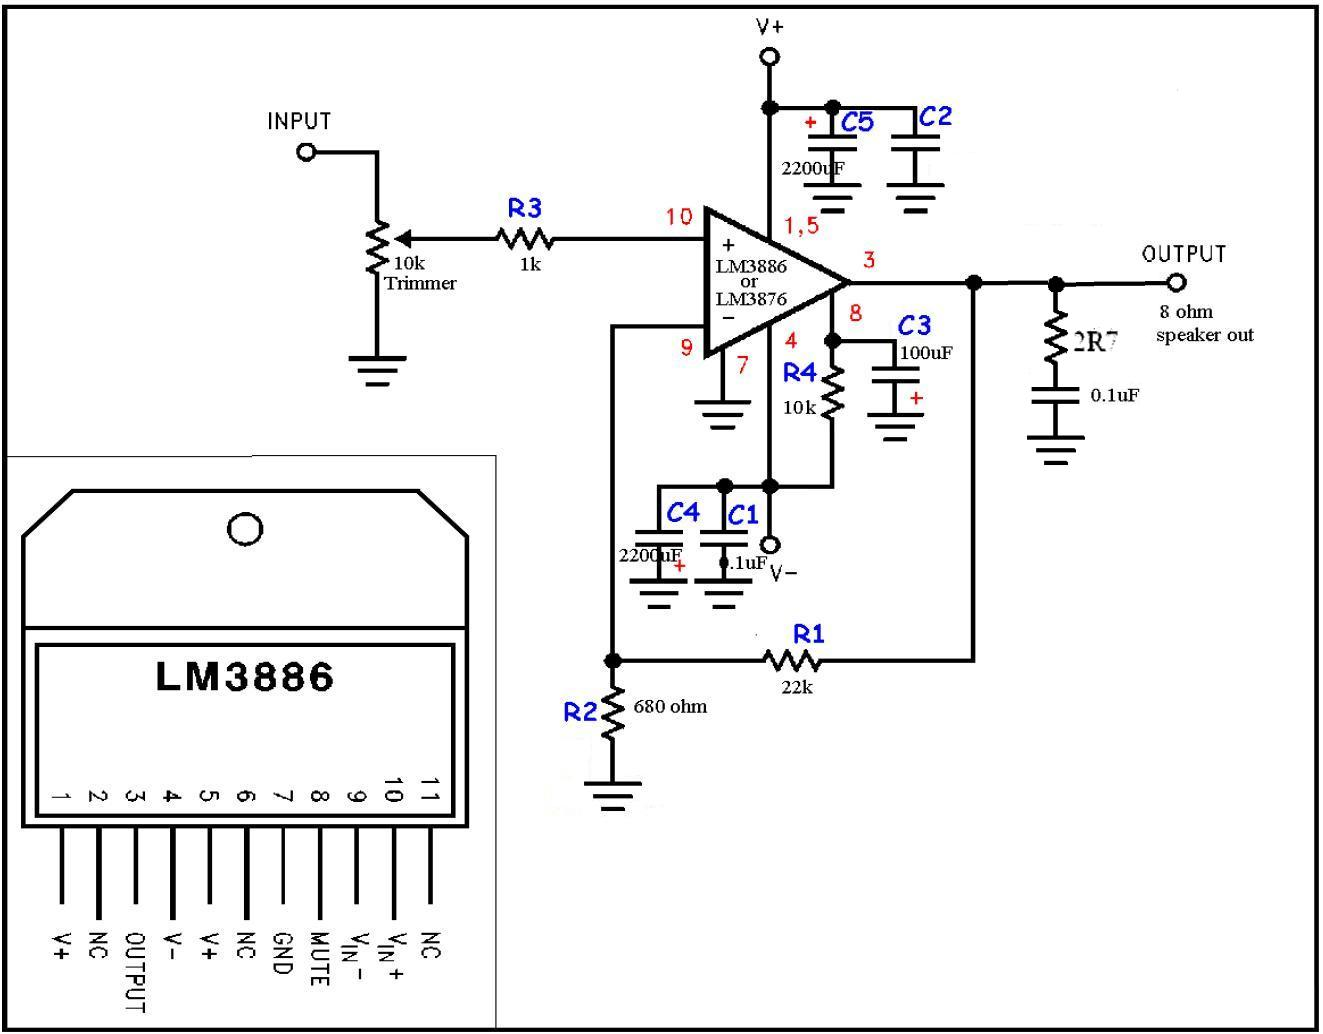 Calculating Cathode Follower Using 12au7 For 90v Supply